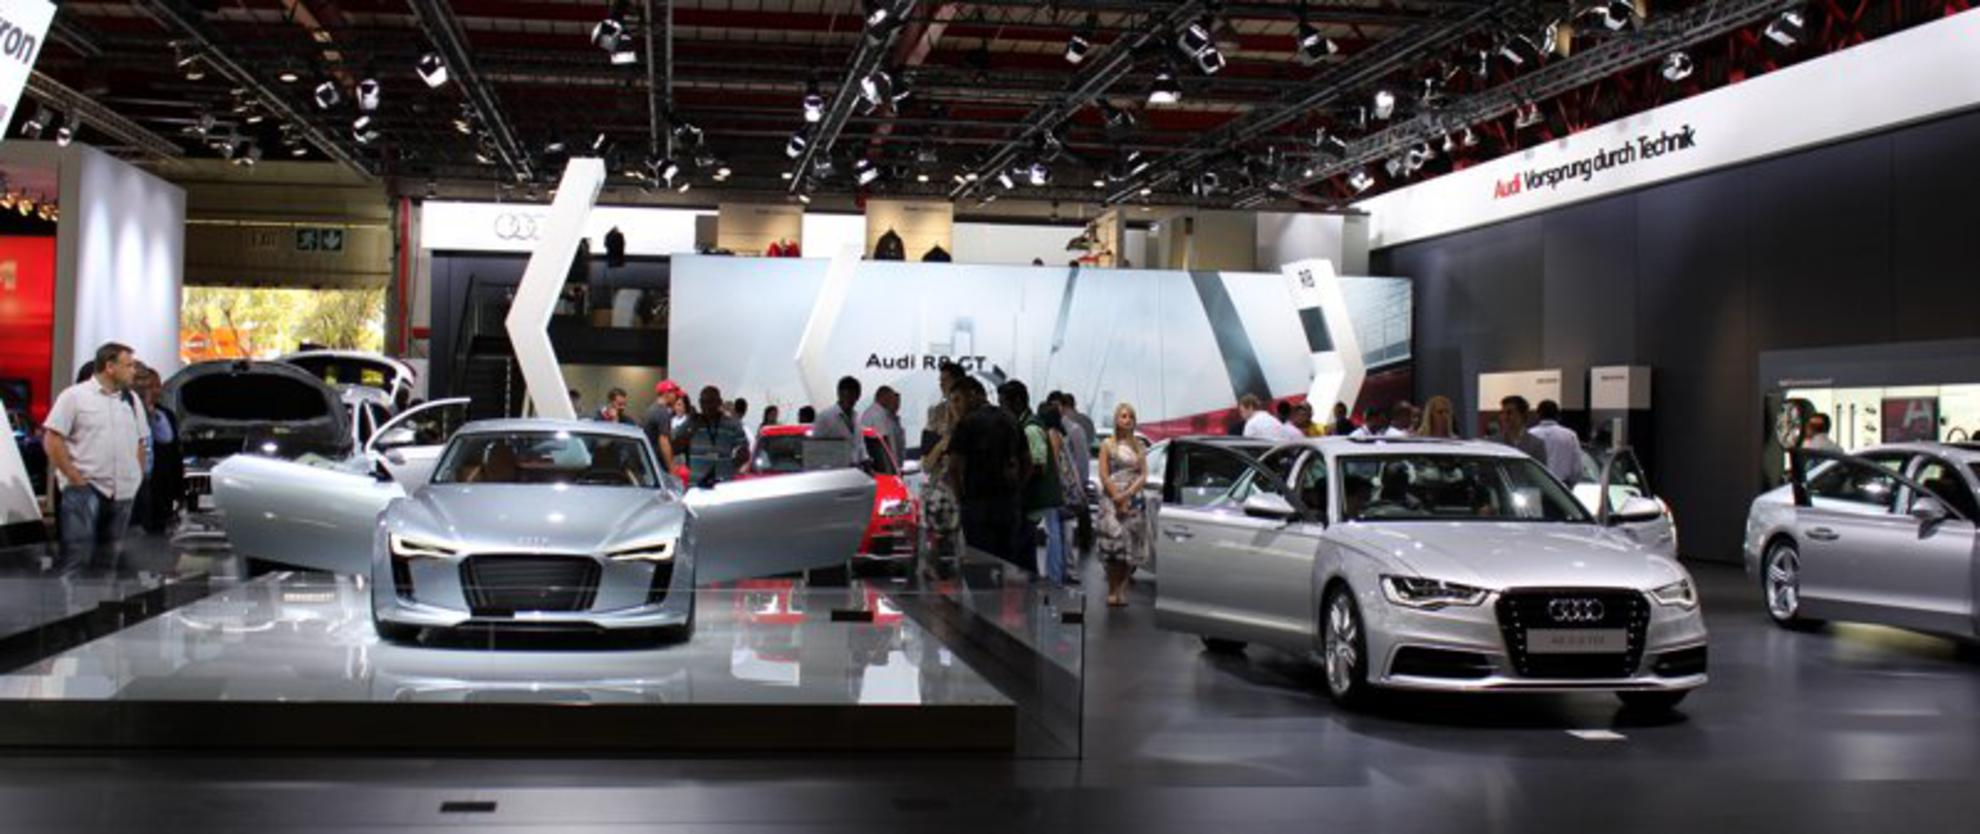 Audi Stand at the Johannesburg Motor Show 2011